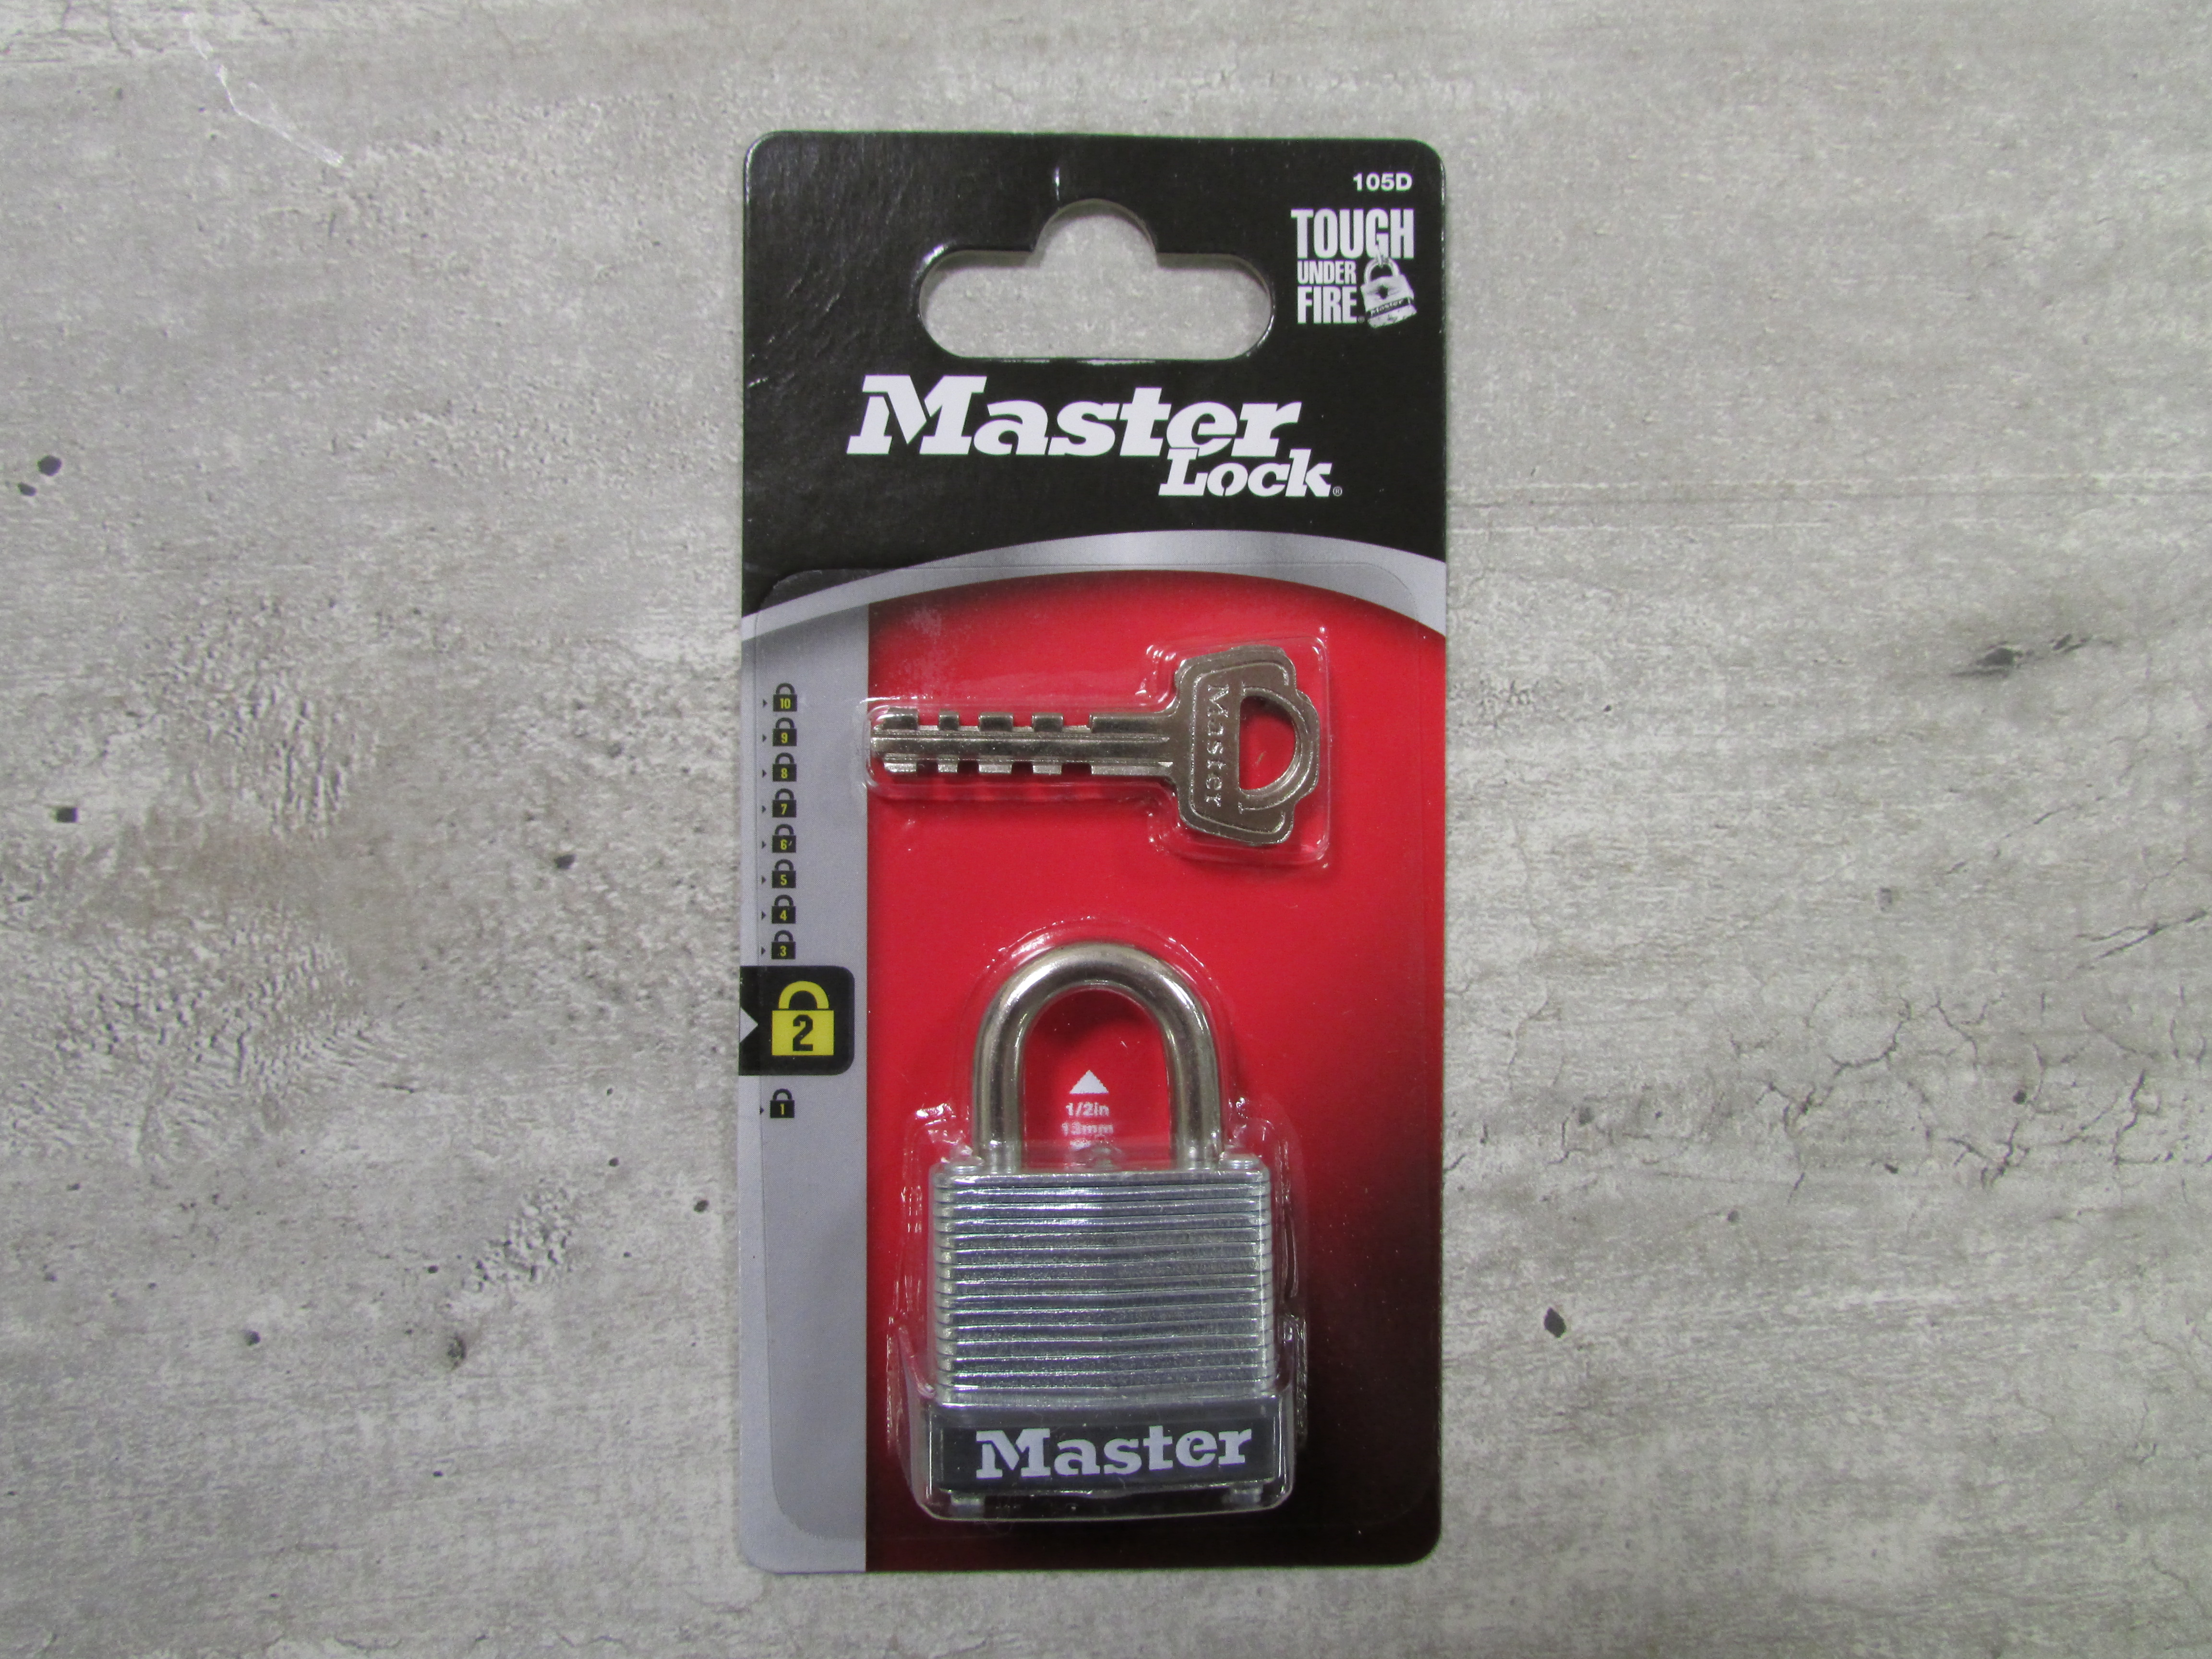 Image for the Steel Keyed Padlock, Master Lock #105D product